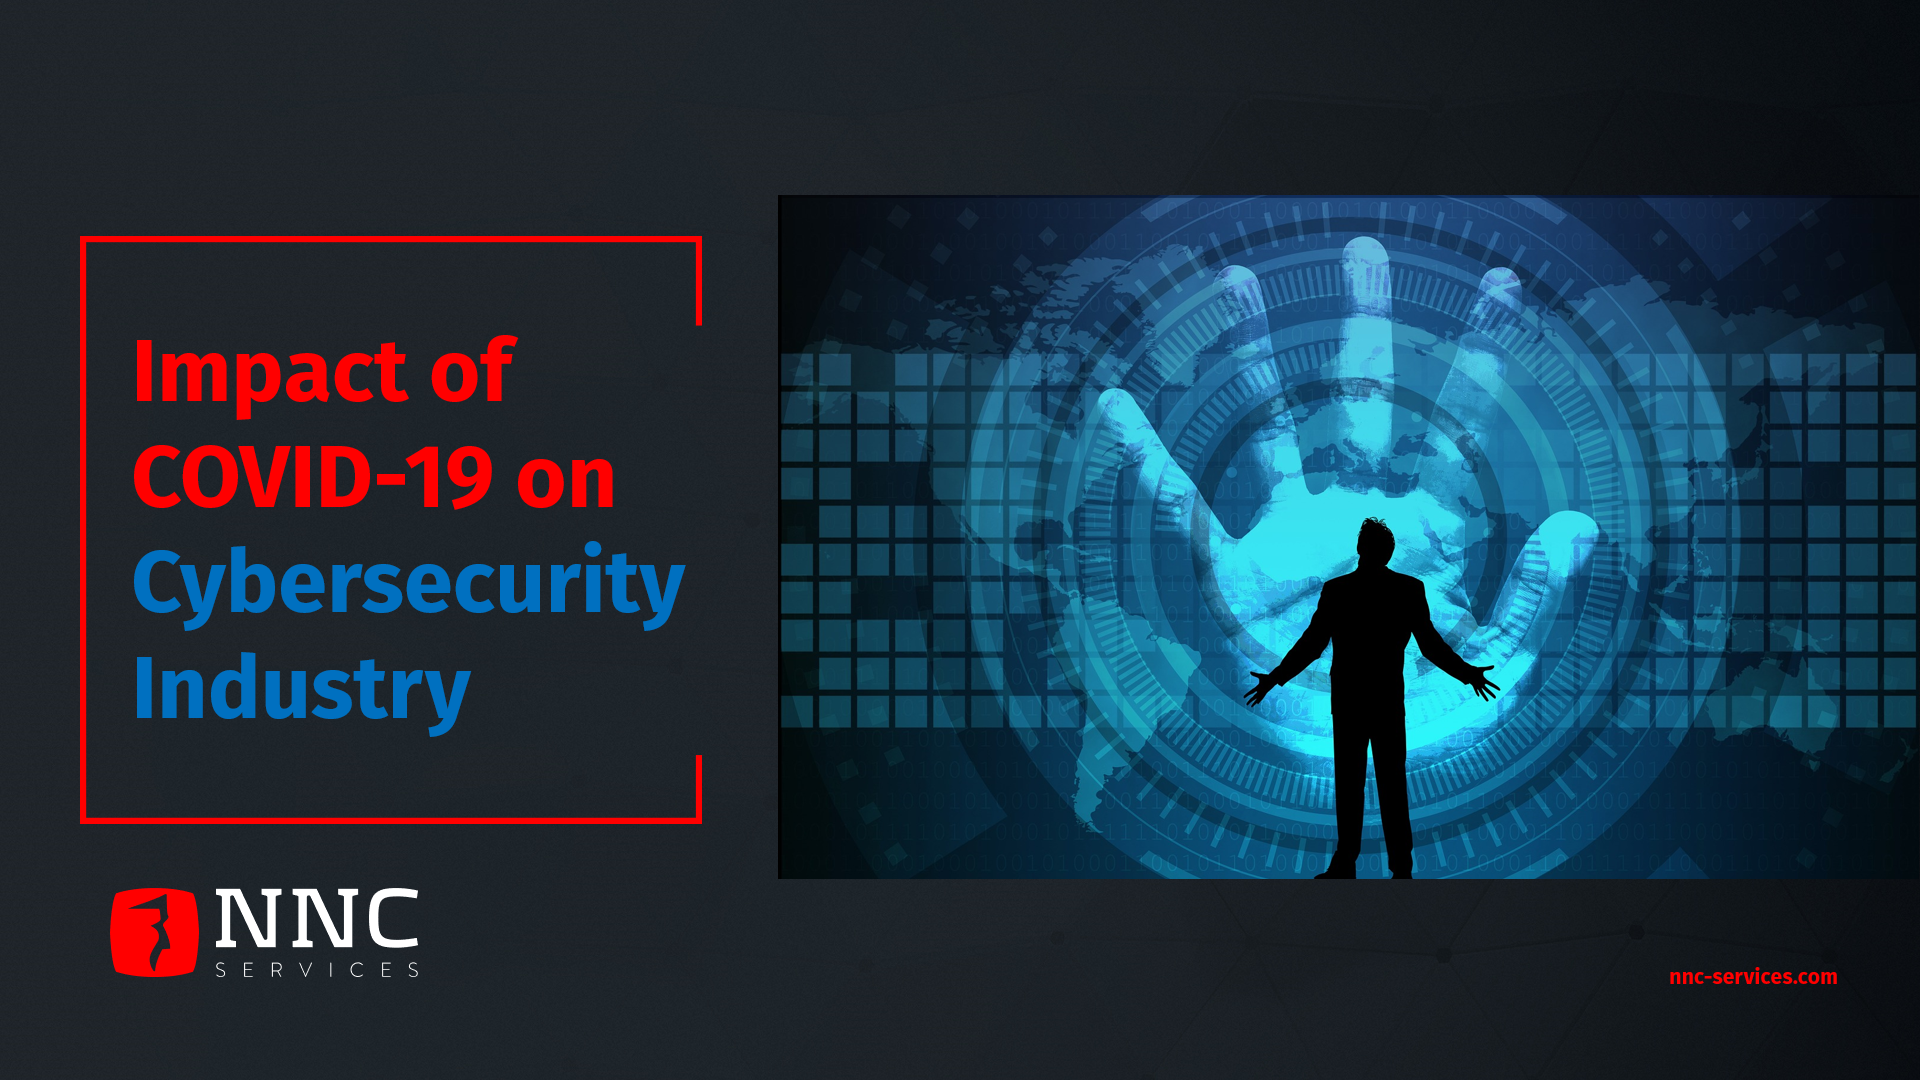 Impact of COVID on Cybersecurity